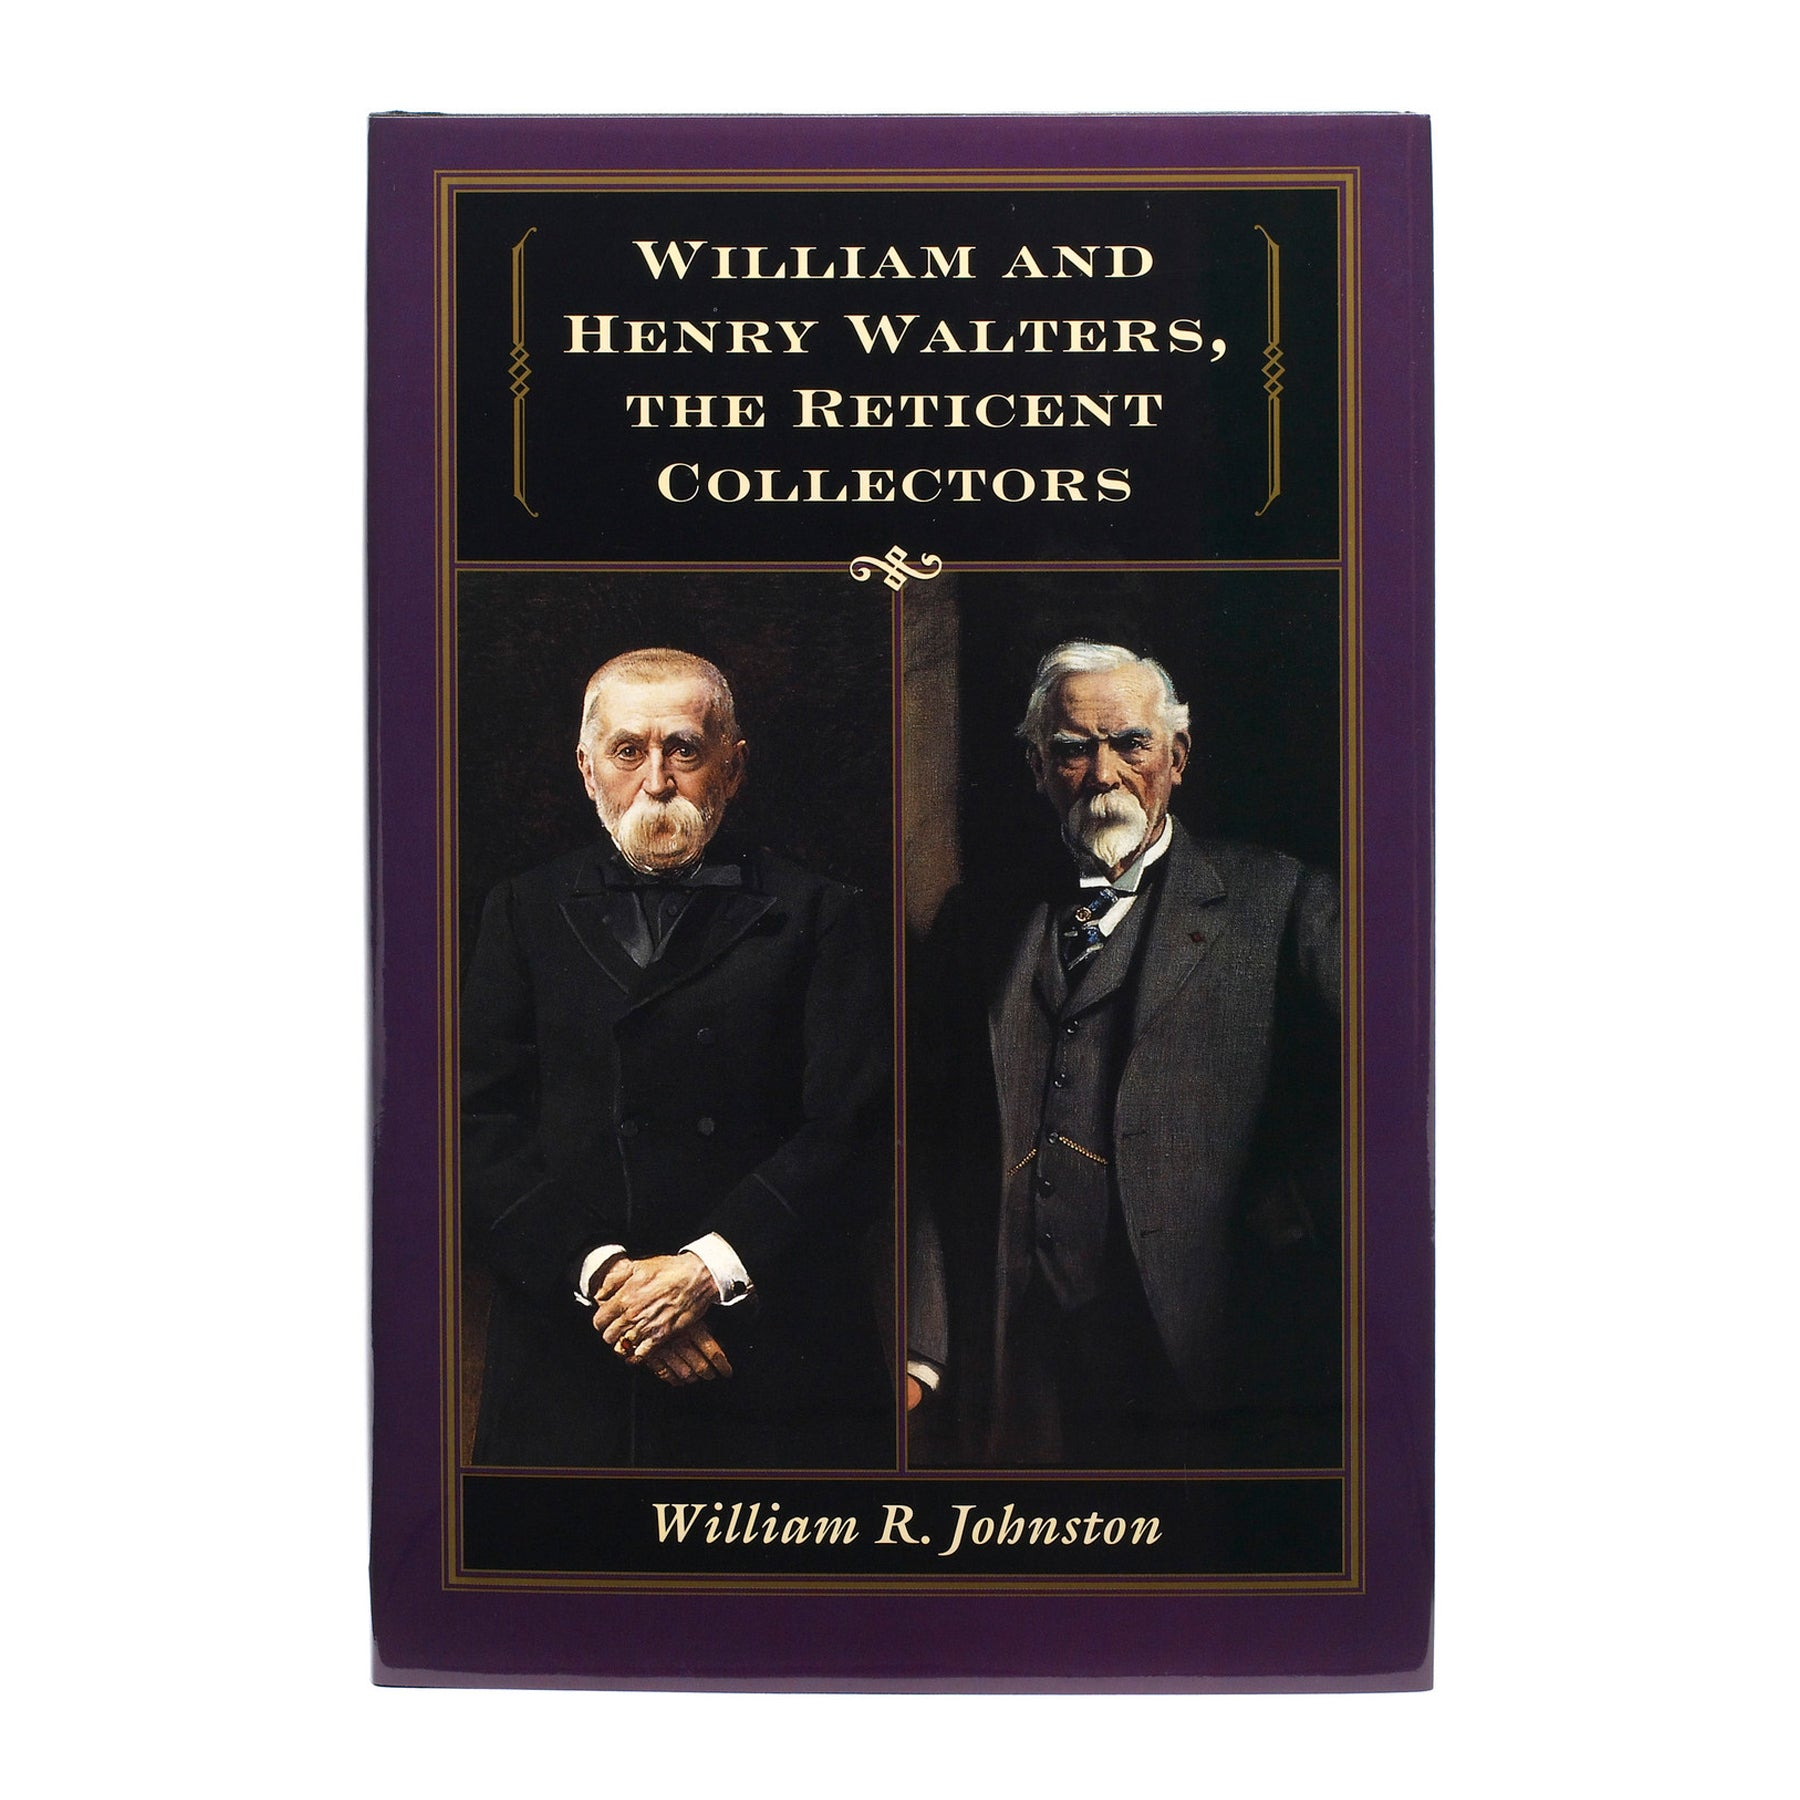 William and Henry Walters, The Reticent Collectors